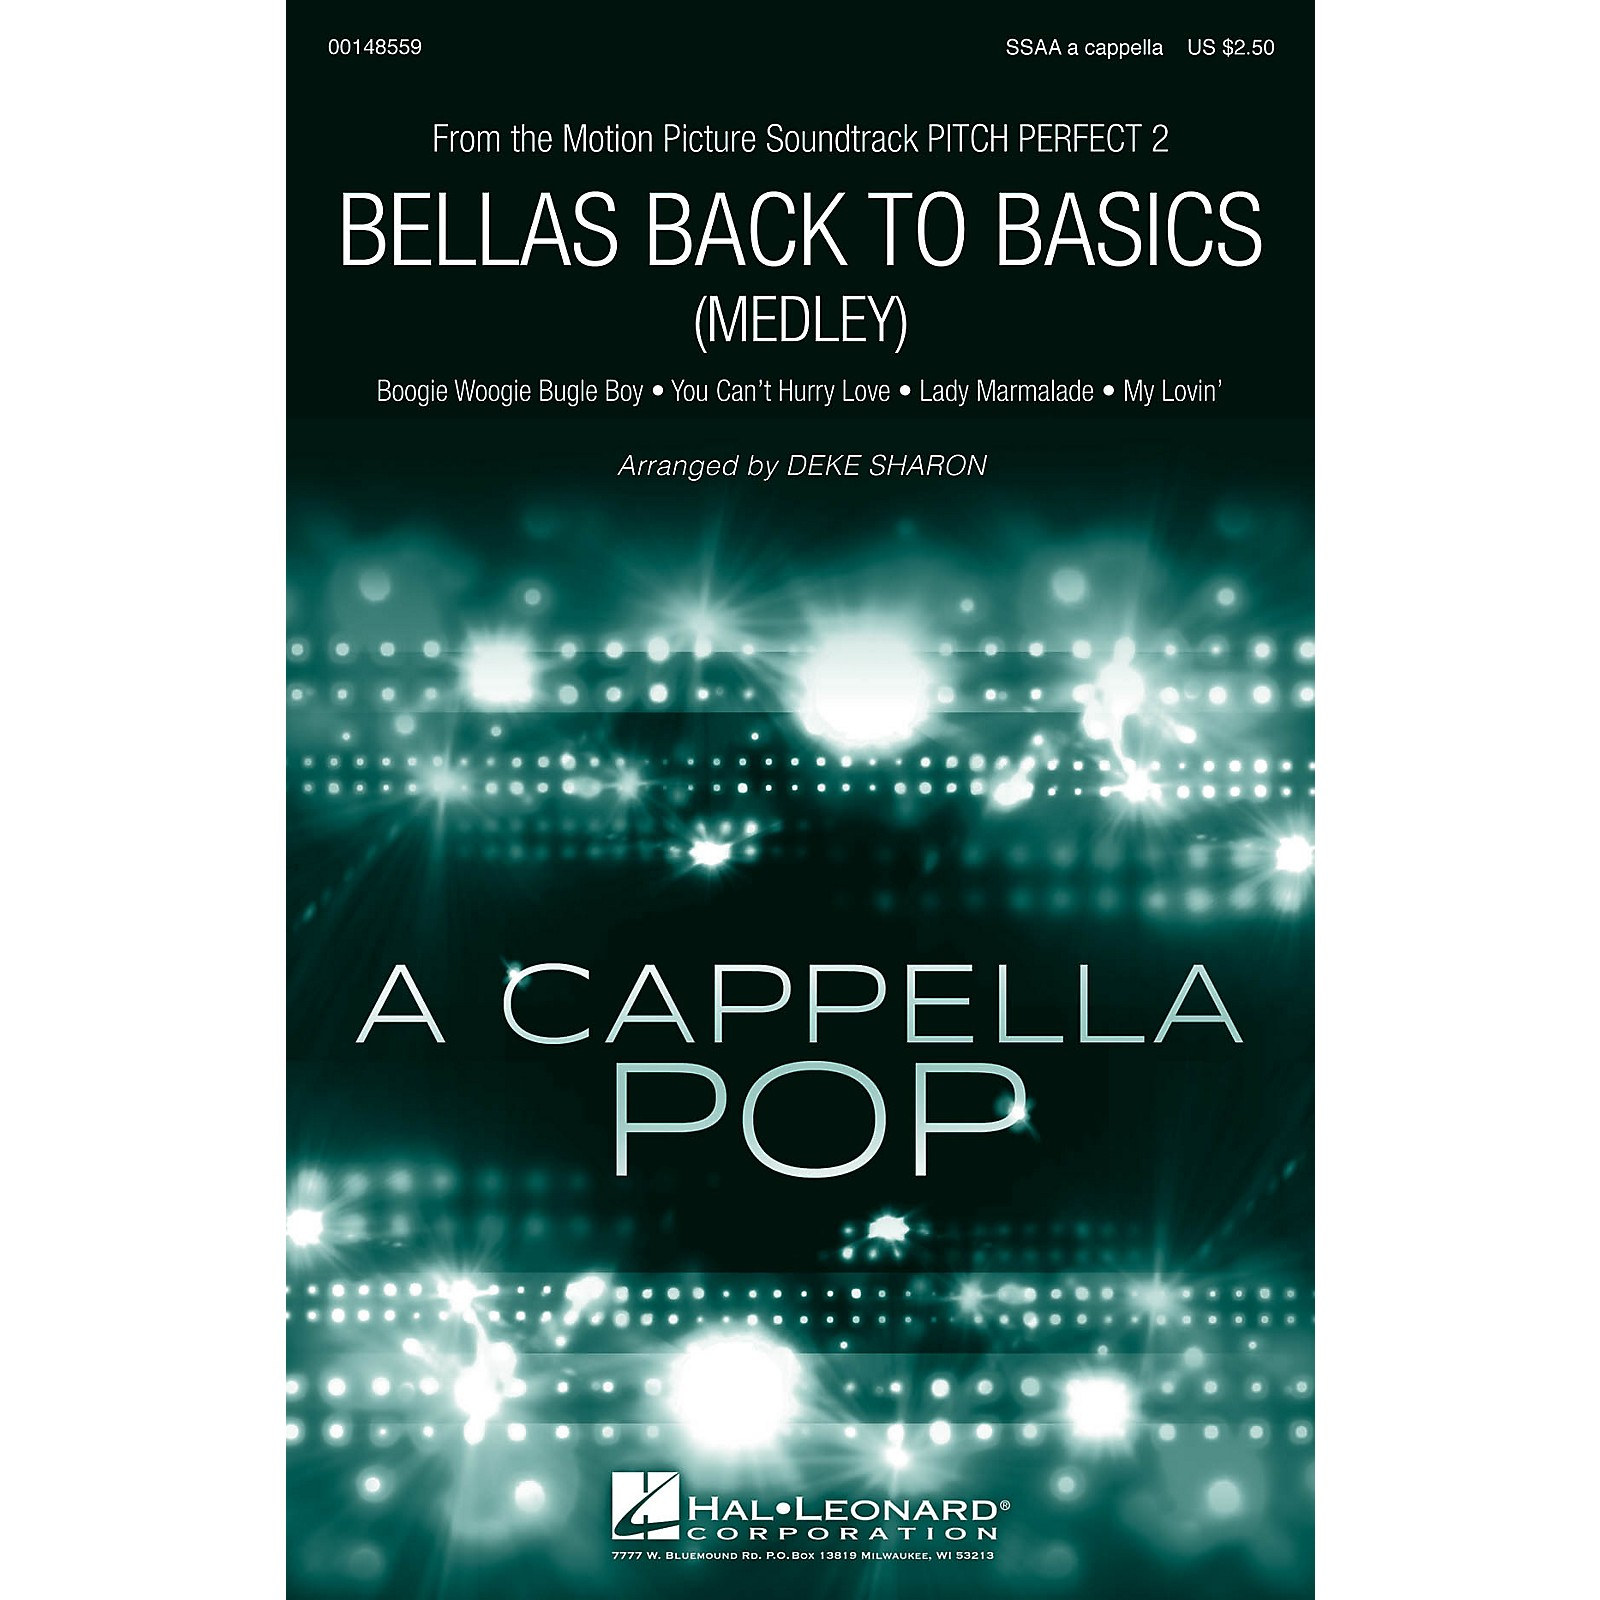 Hal Leonard Bellas Back to Basics (Medley) from Pitch Perfect 2 SSAA Div A Cappella arranged by Deke Sharon